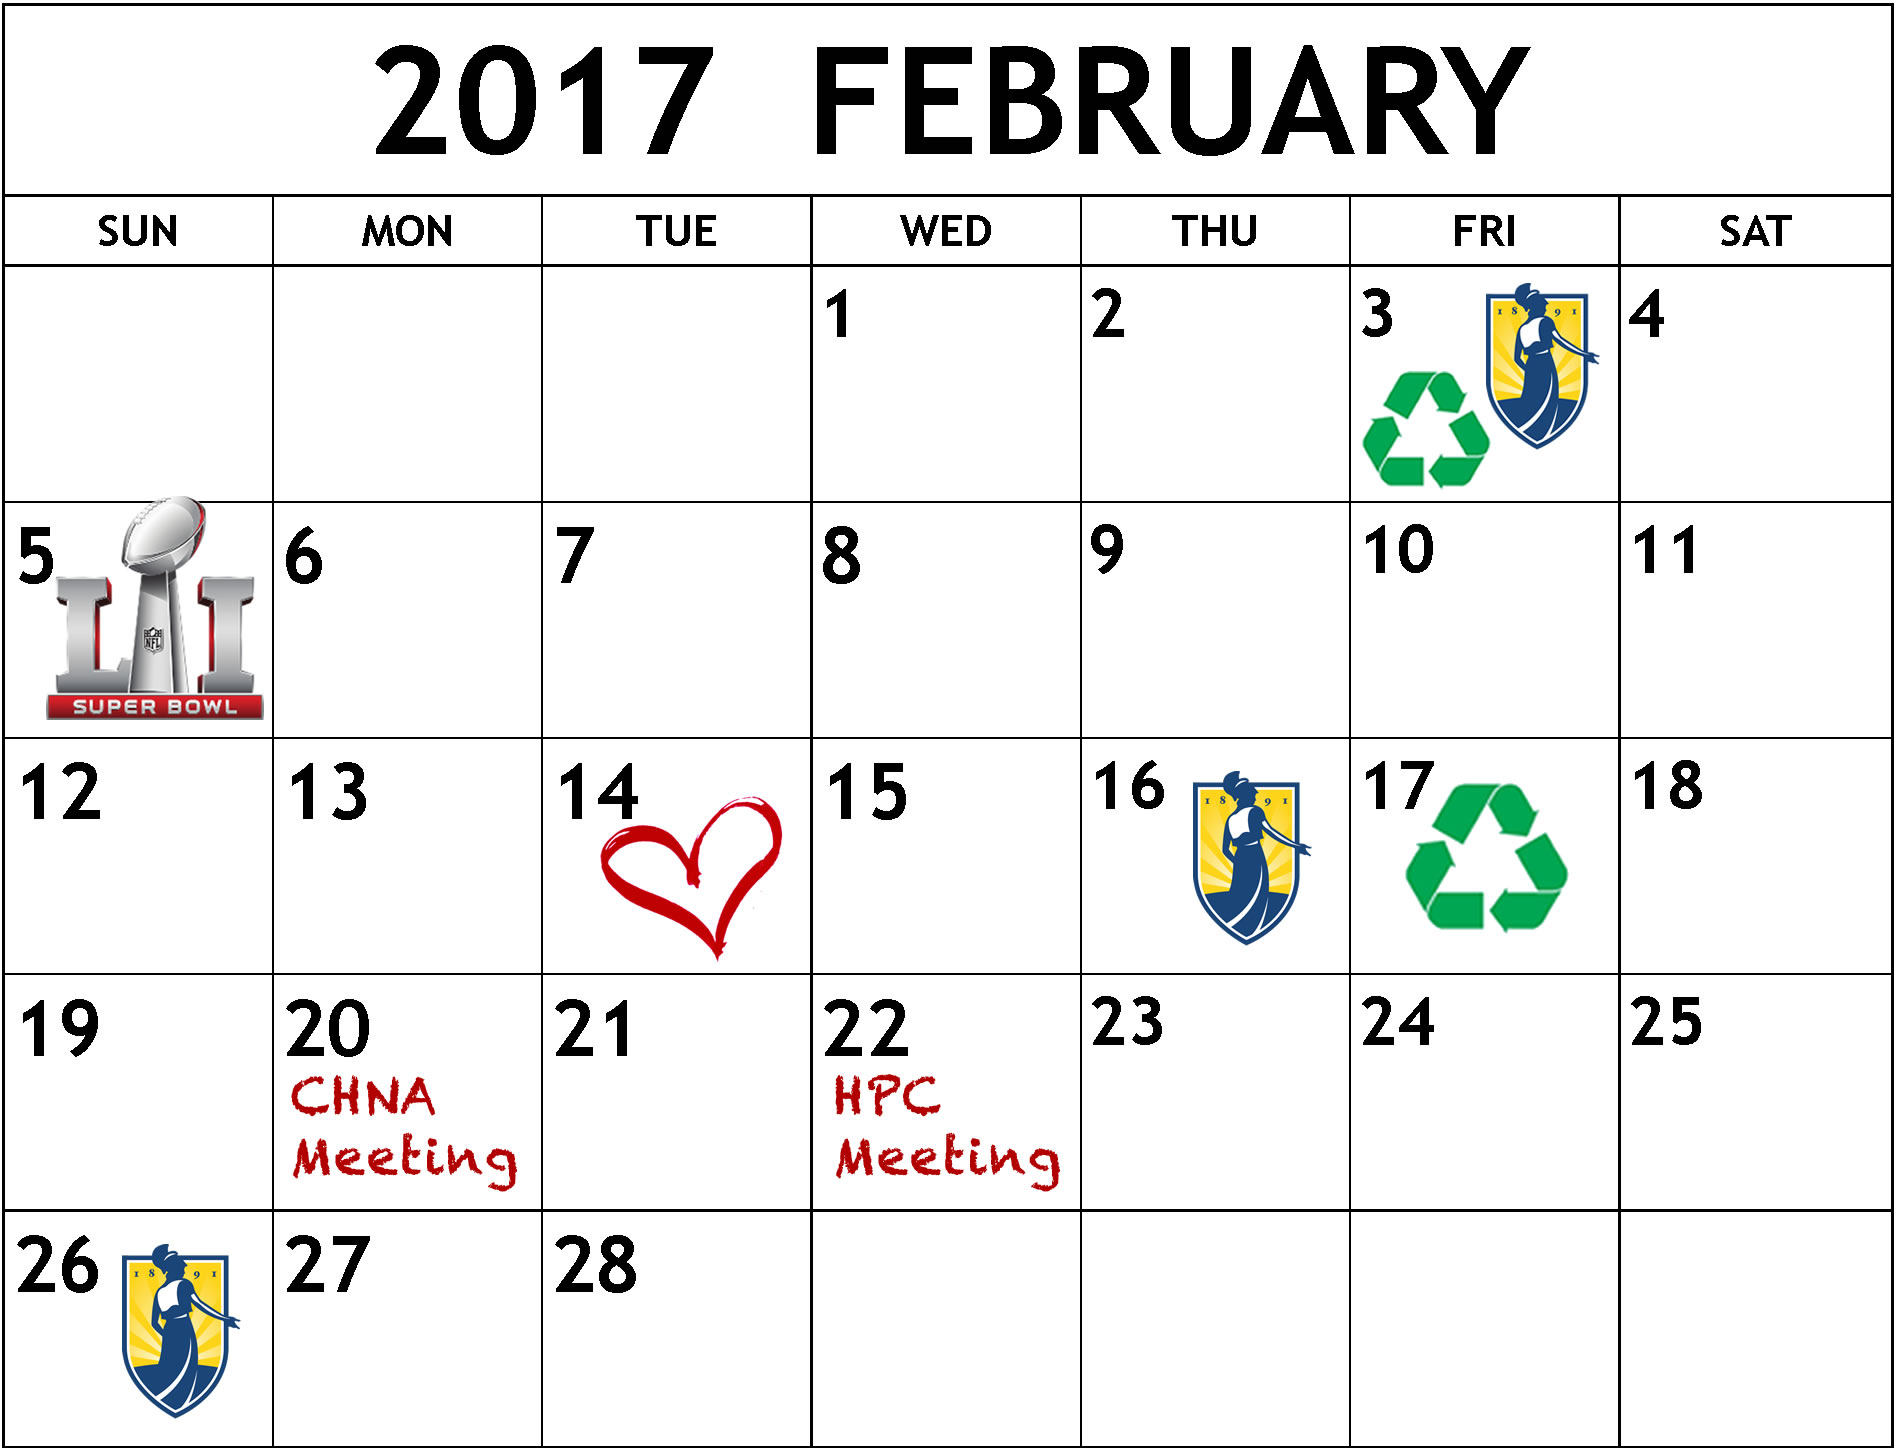 February 2017 calendar of events